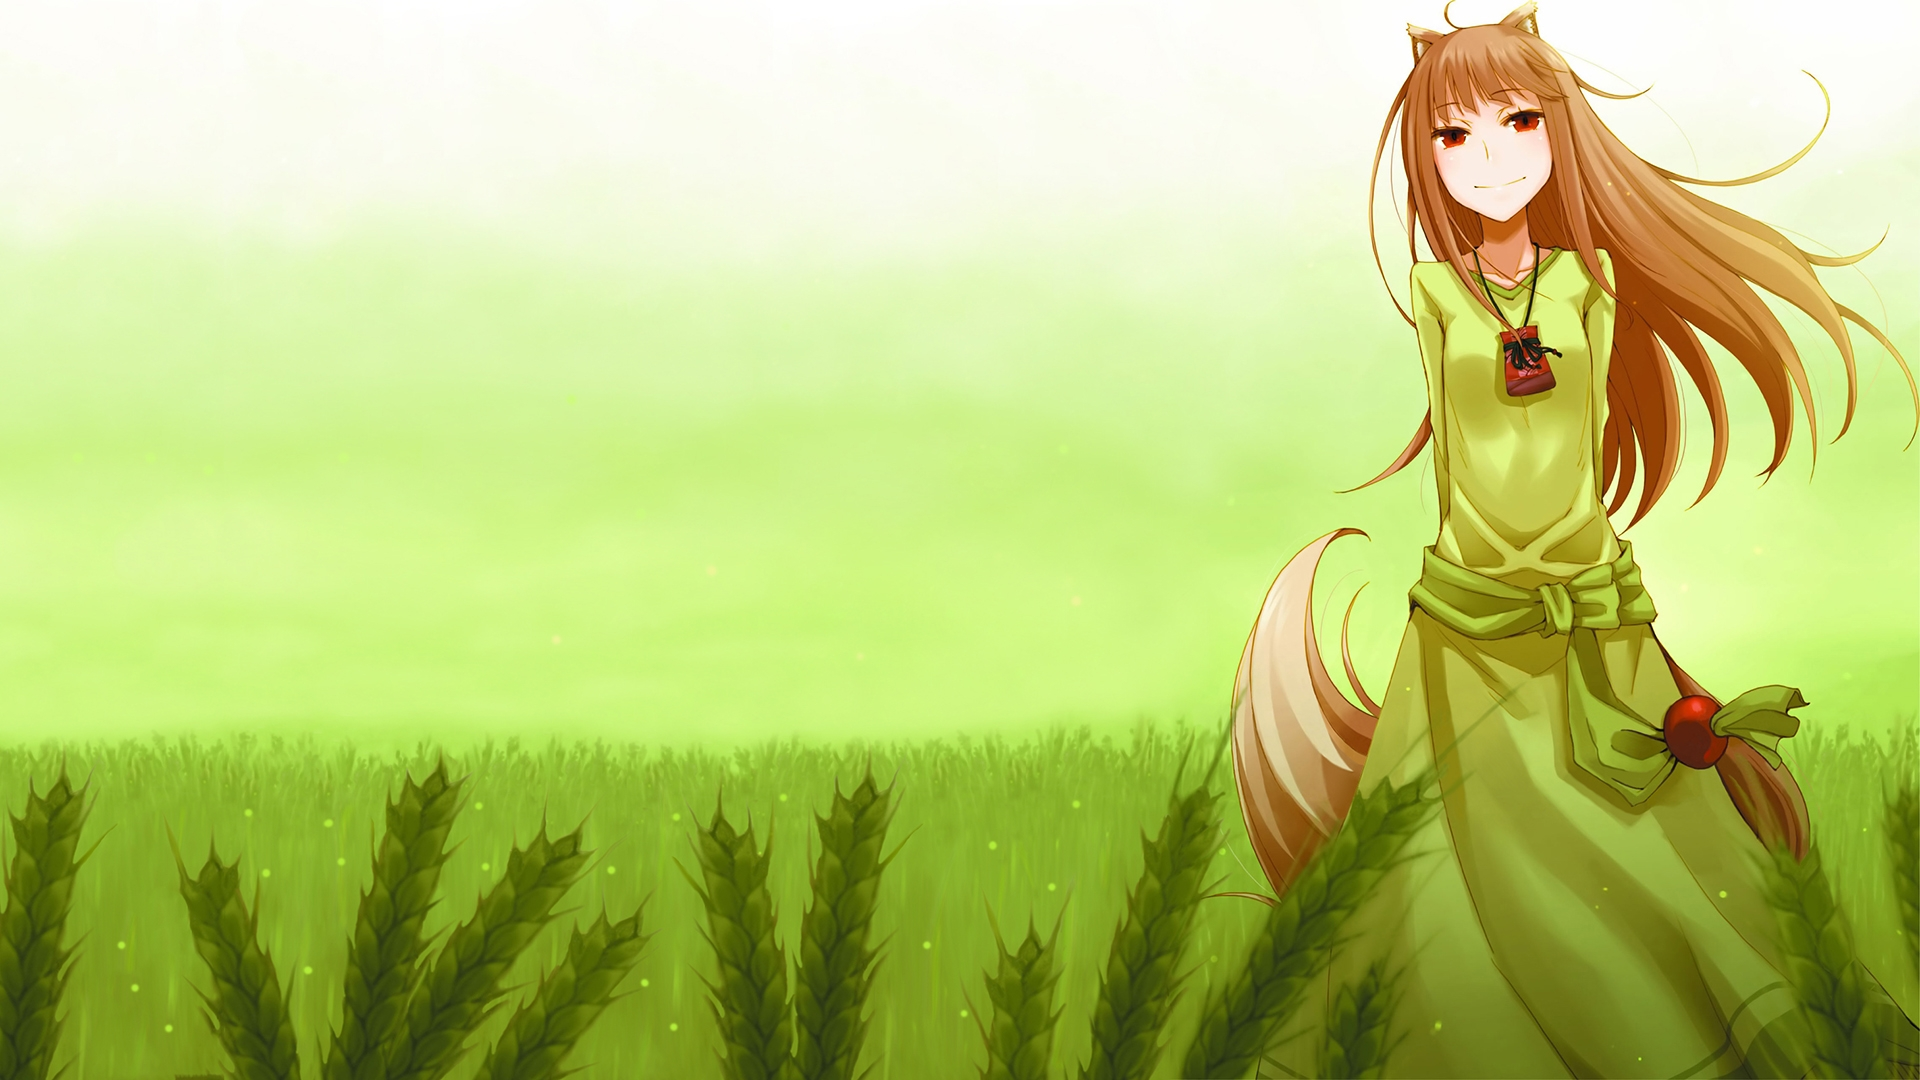 Spice And Wolf Images HD Wallpaper Background Photos